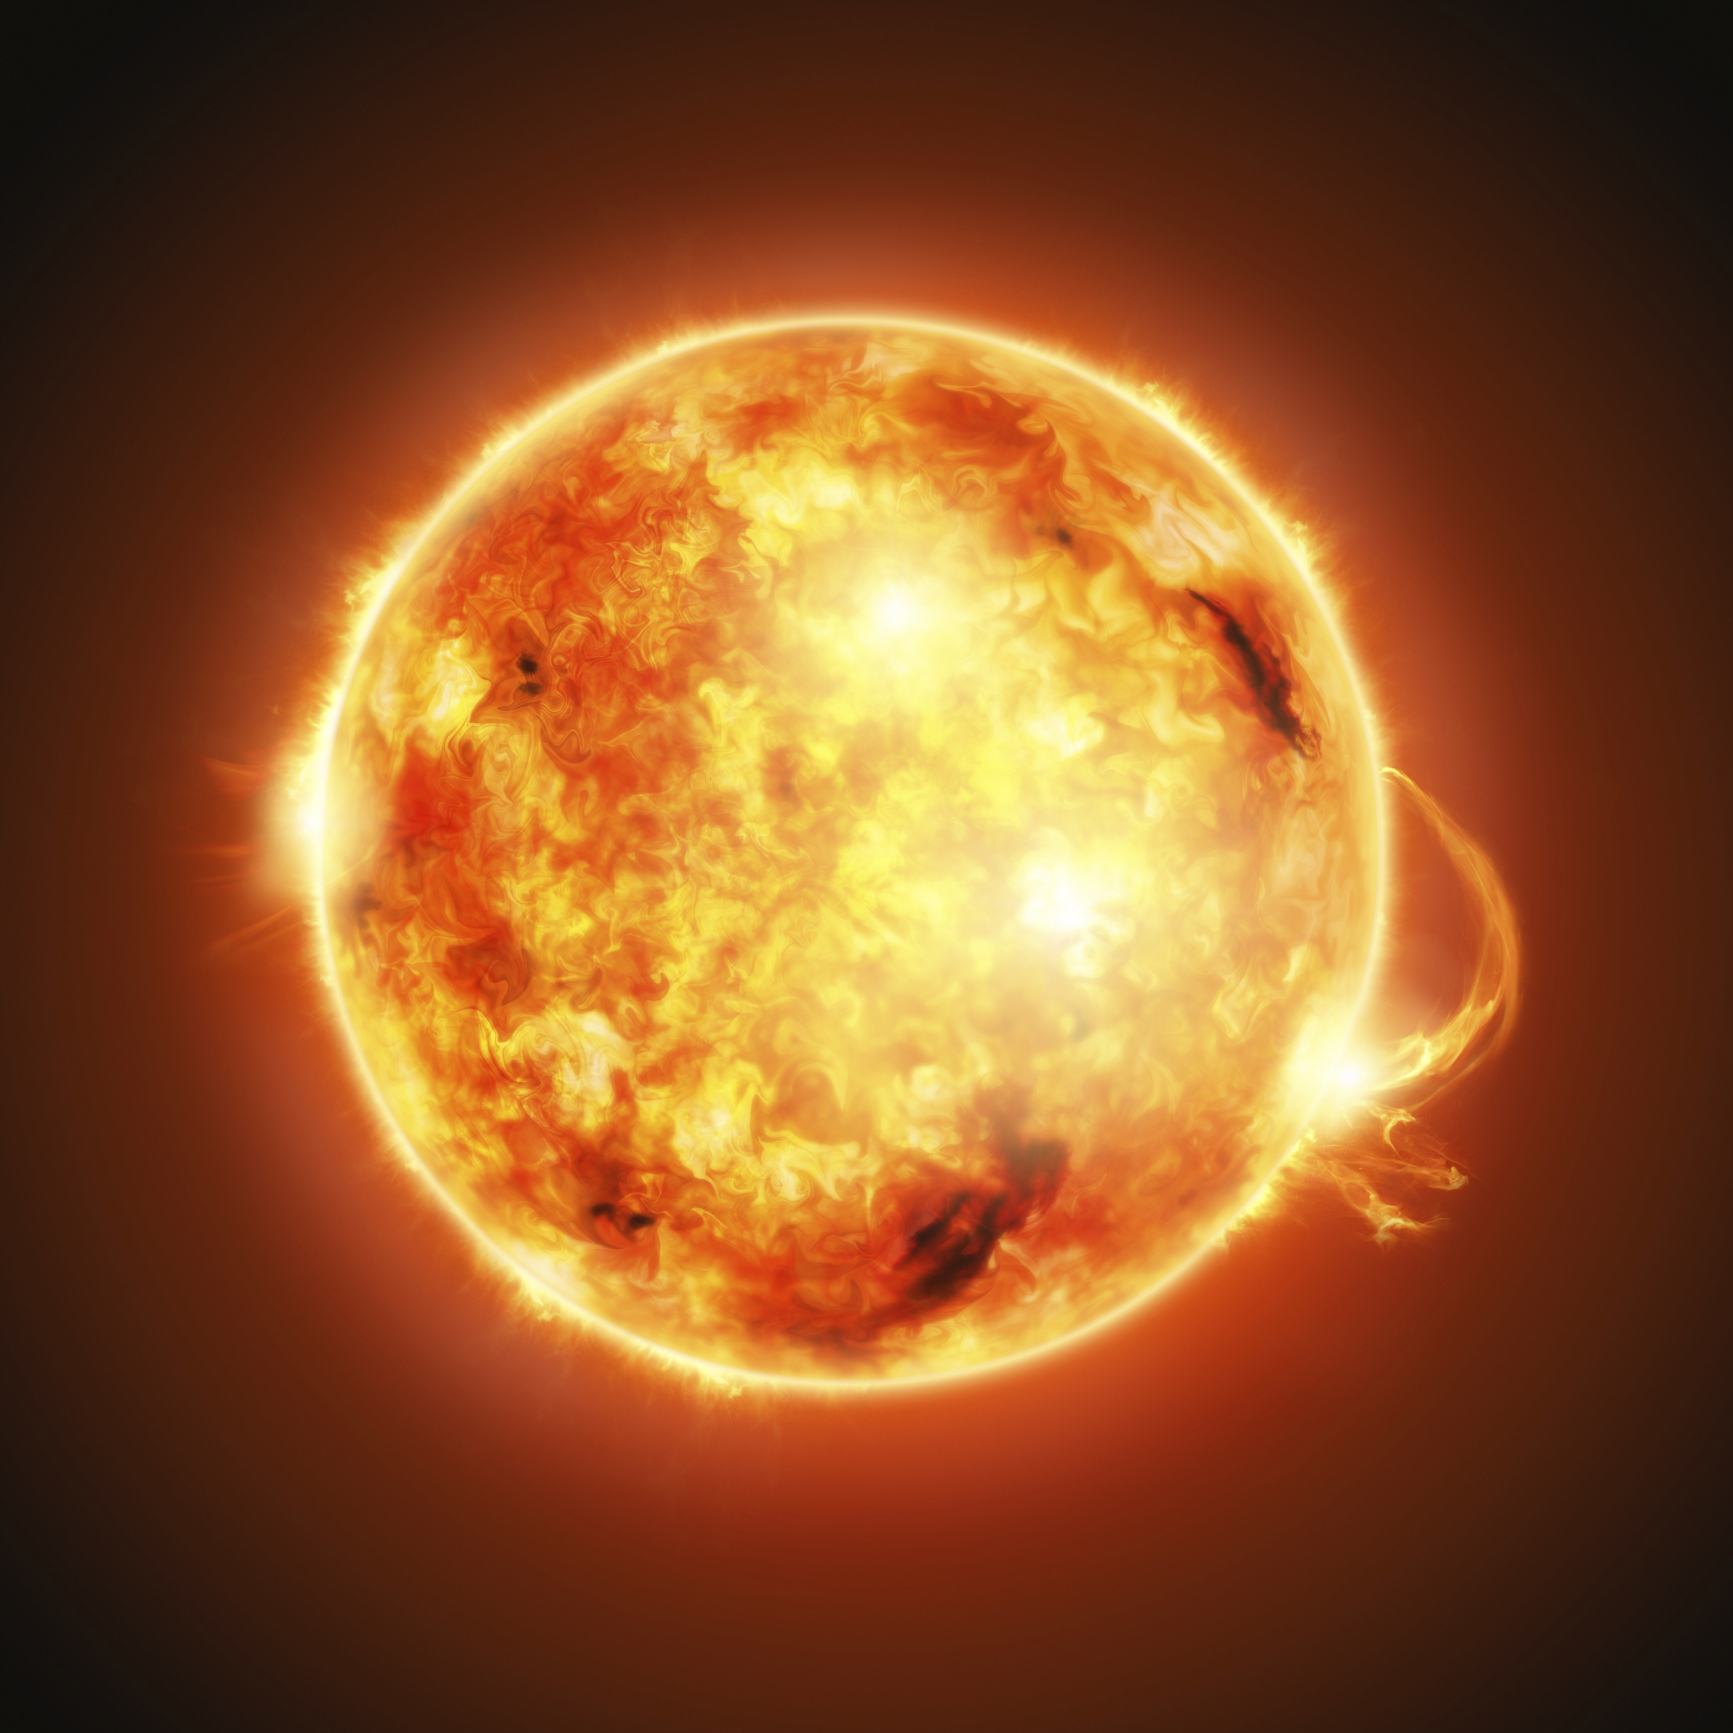 The Sun rotates in the opposite direction to Earth with the Sun rotating from west to east instead of east to west like Earth.